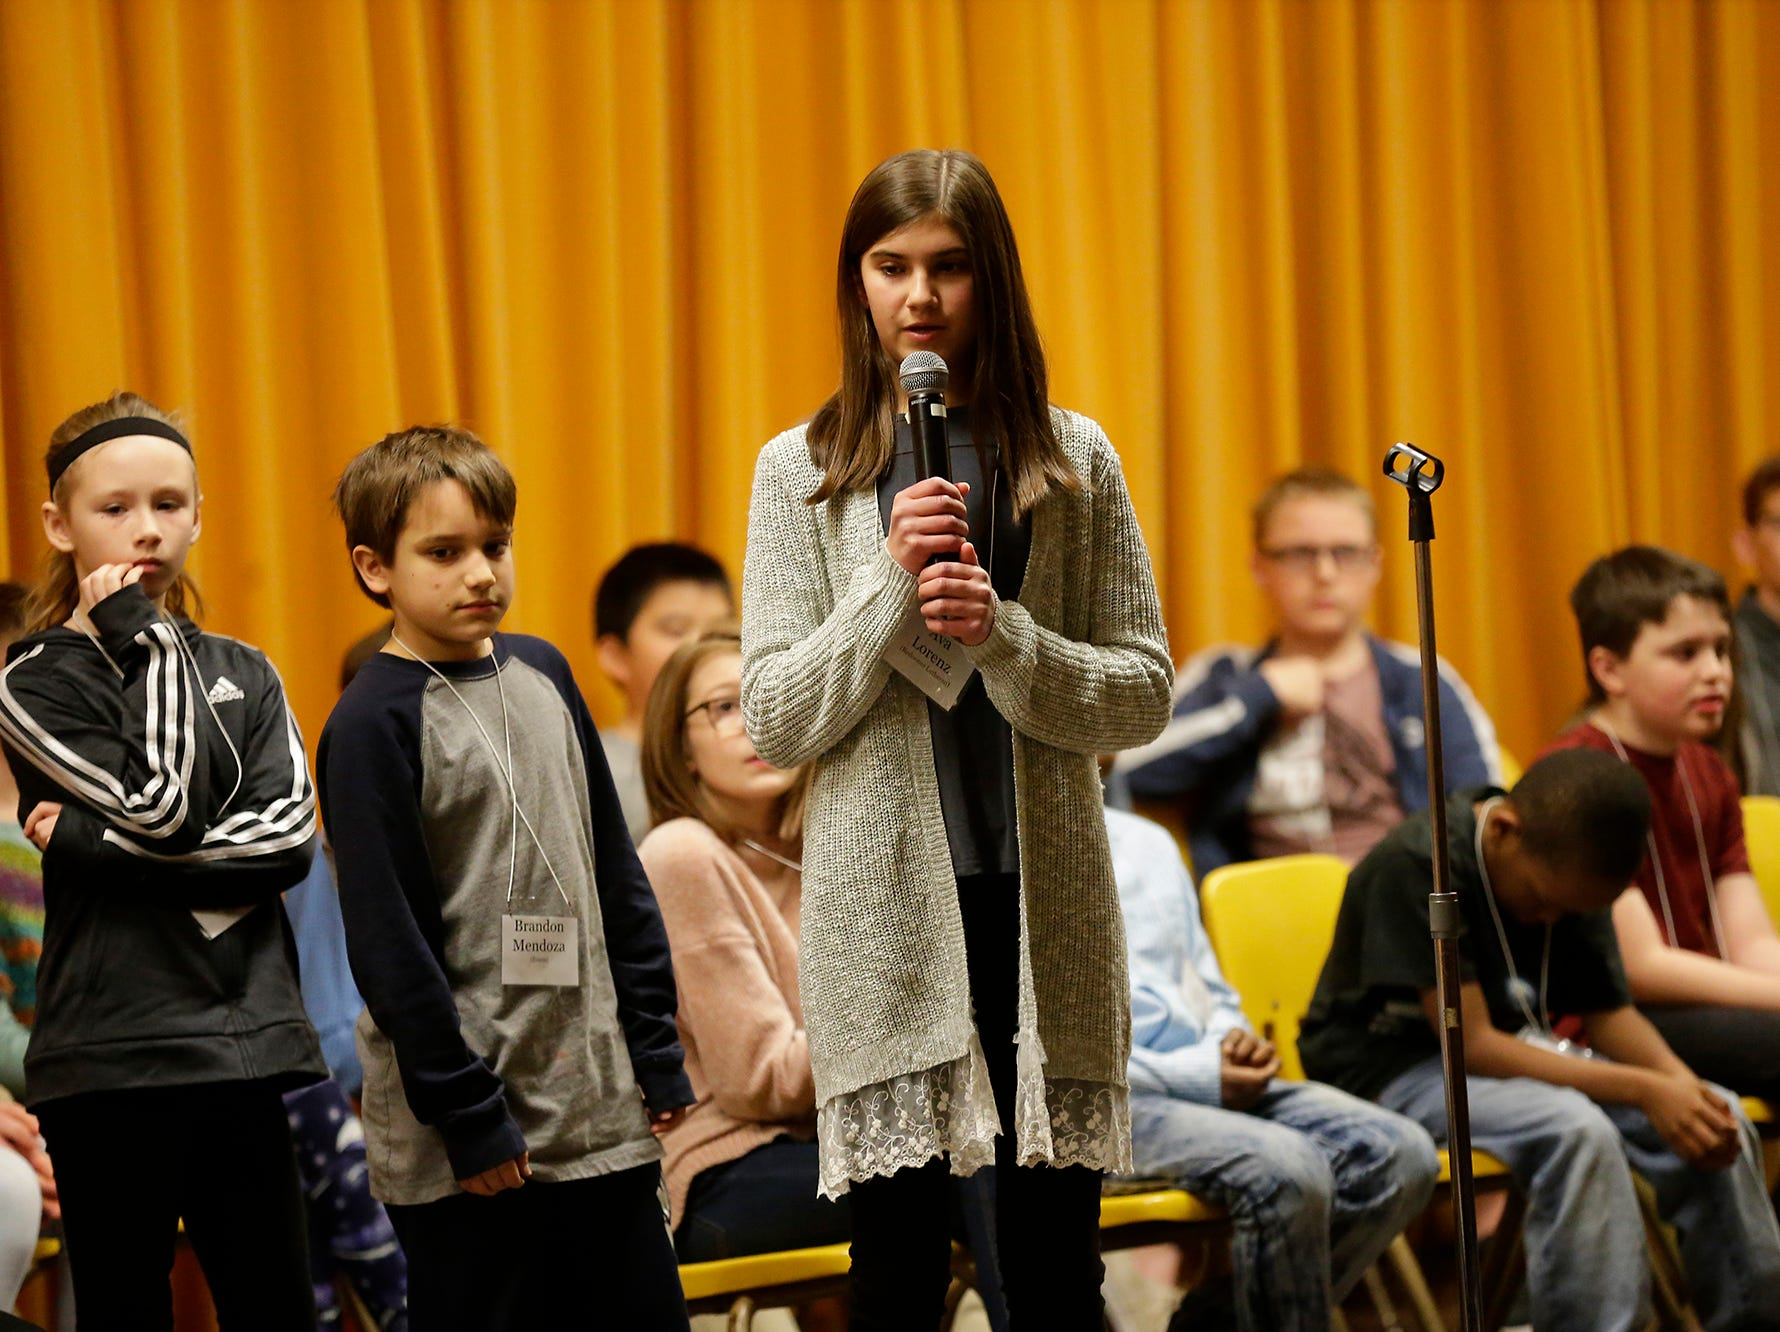 Ava Lorenz of Redeemer Lutheran competes in the Fond du Lac citywide spelling bee Tuesday, February 26, 2019 at These Middle School in Fond du Lac, Wis. Doug Raflik/USA TODAY NETWORK-Wisconsin